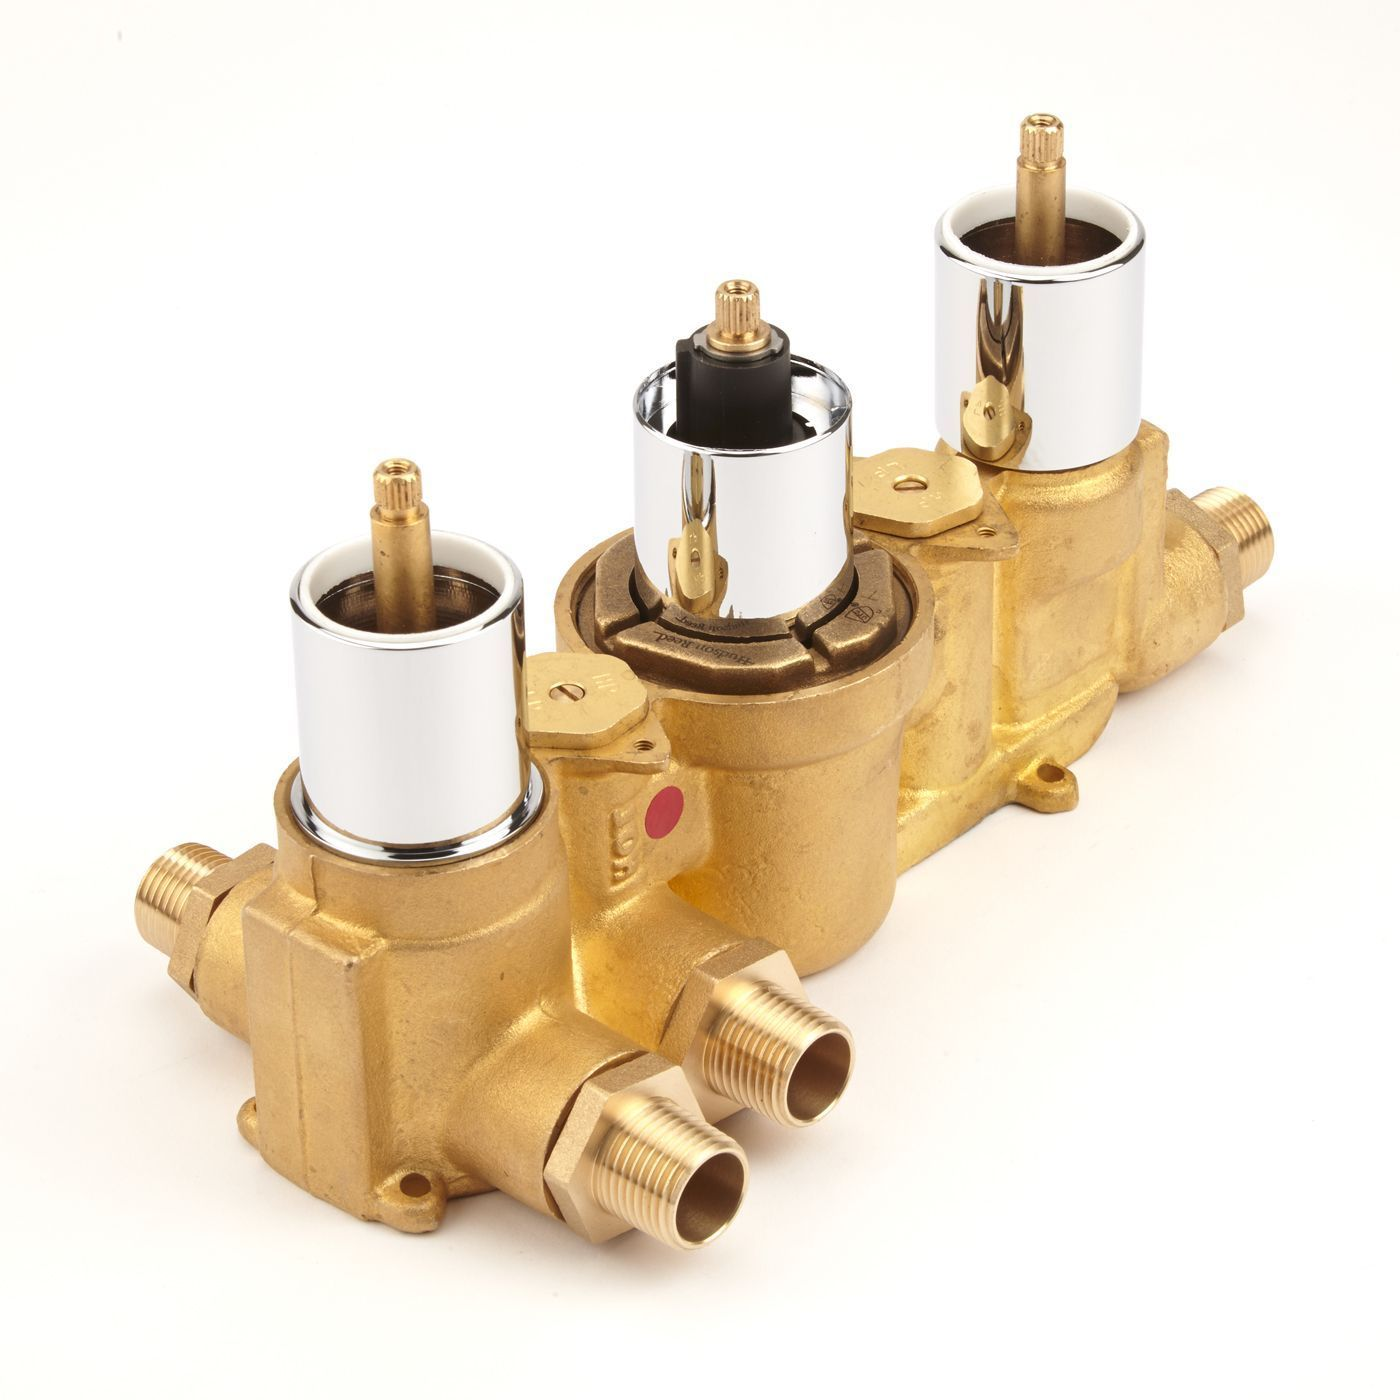 james web traditional exposed st filler bath shower product thermostatic valves collection valve